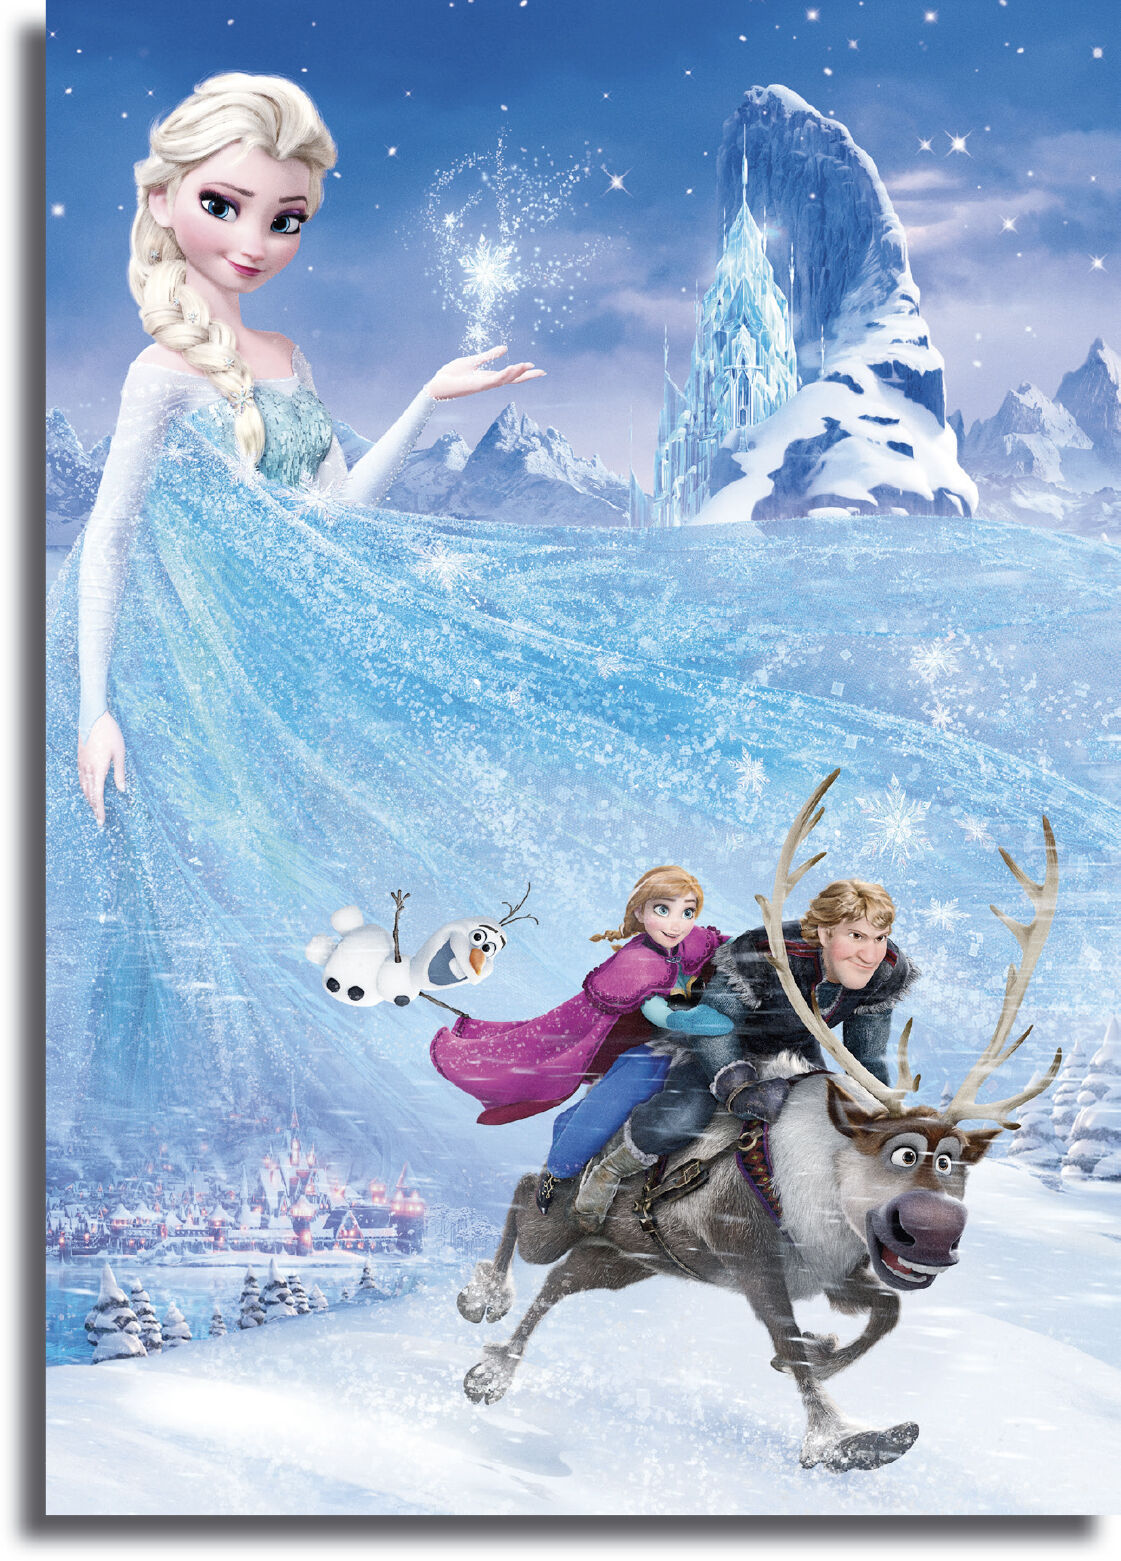 Frozen Movie Elsa Framed Giant CANVAS PRINT  - A0 A1 A2 A3 A4 Größes